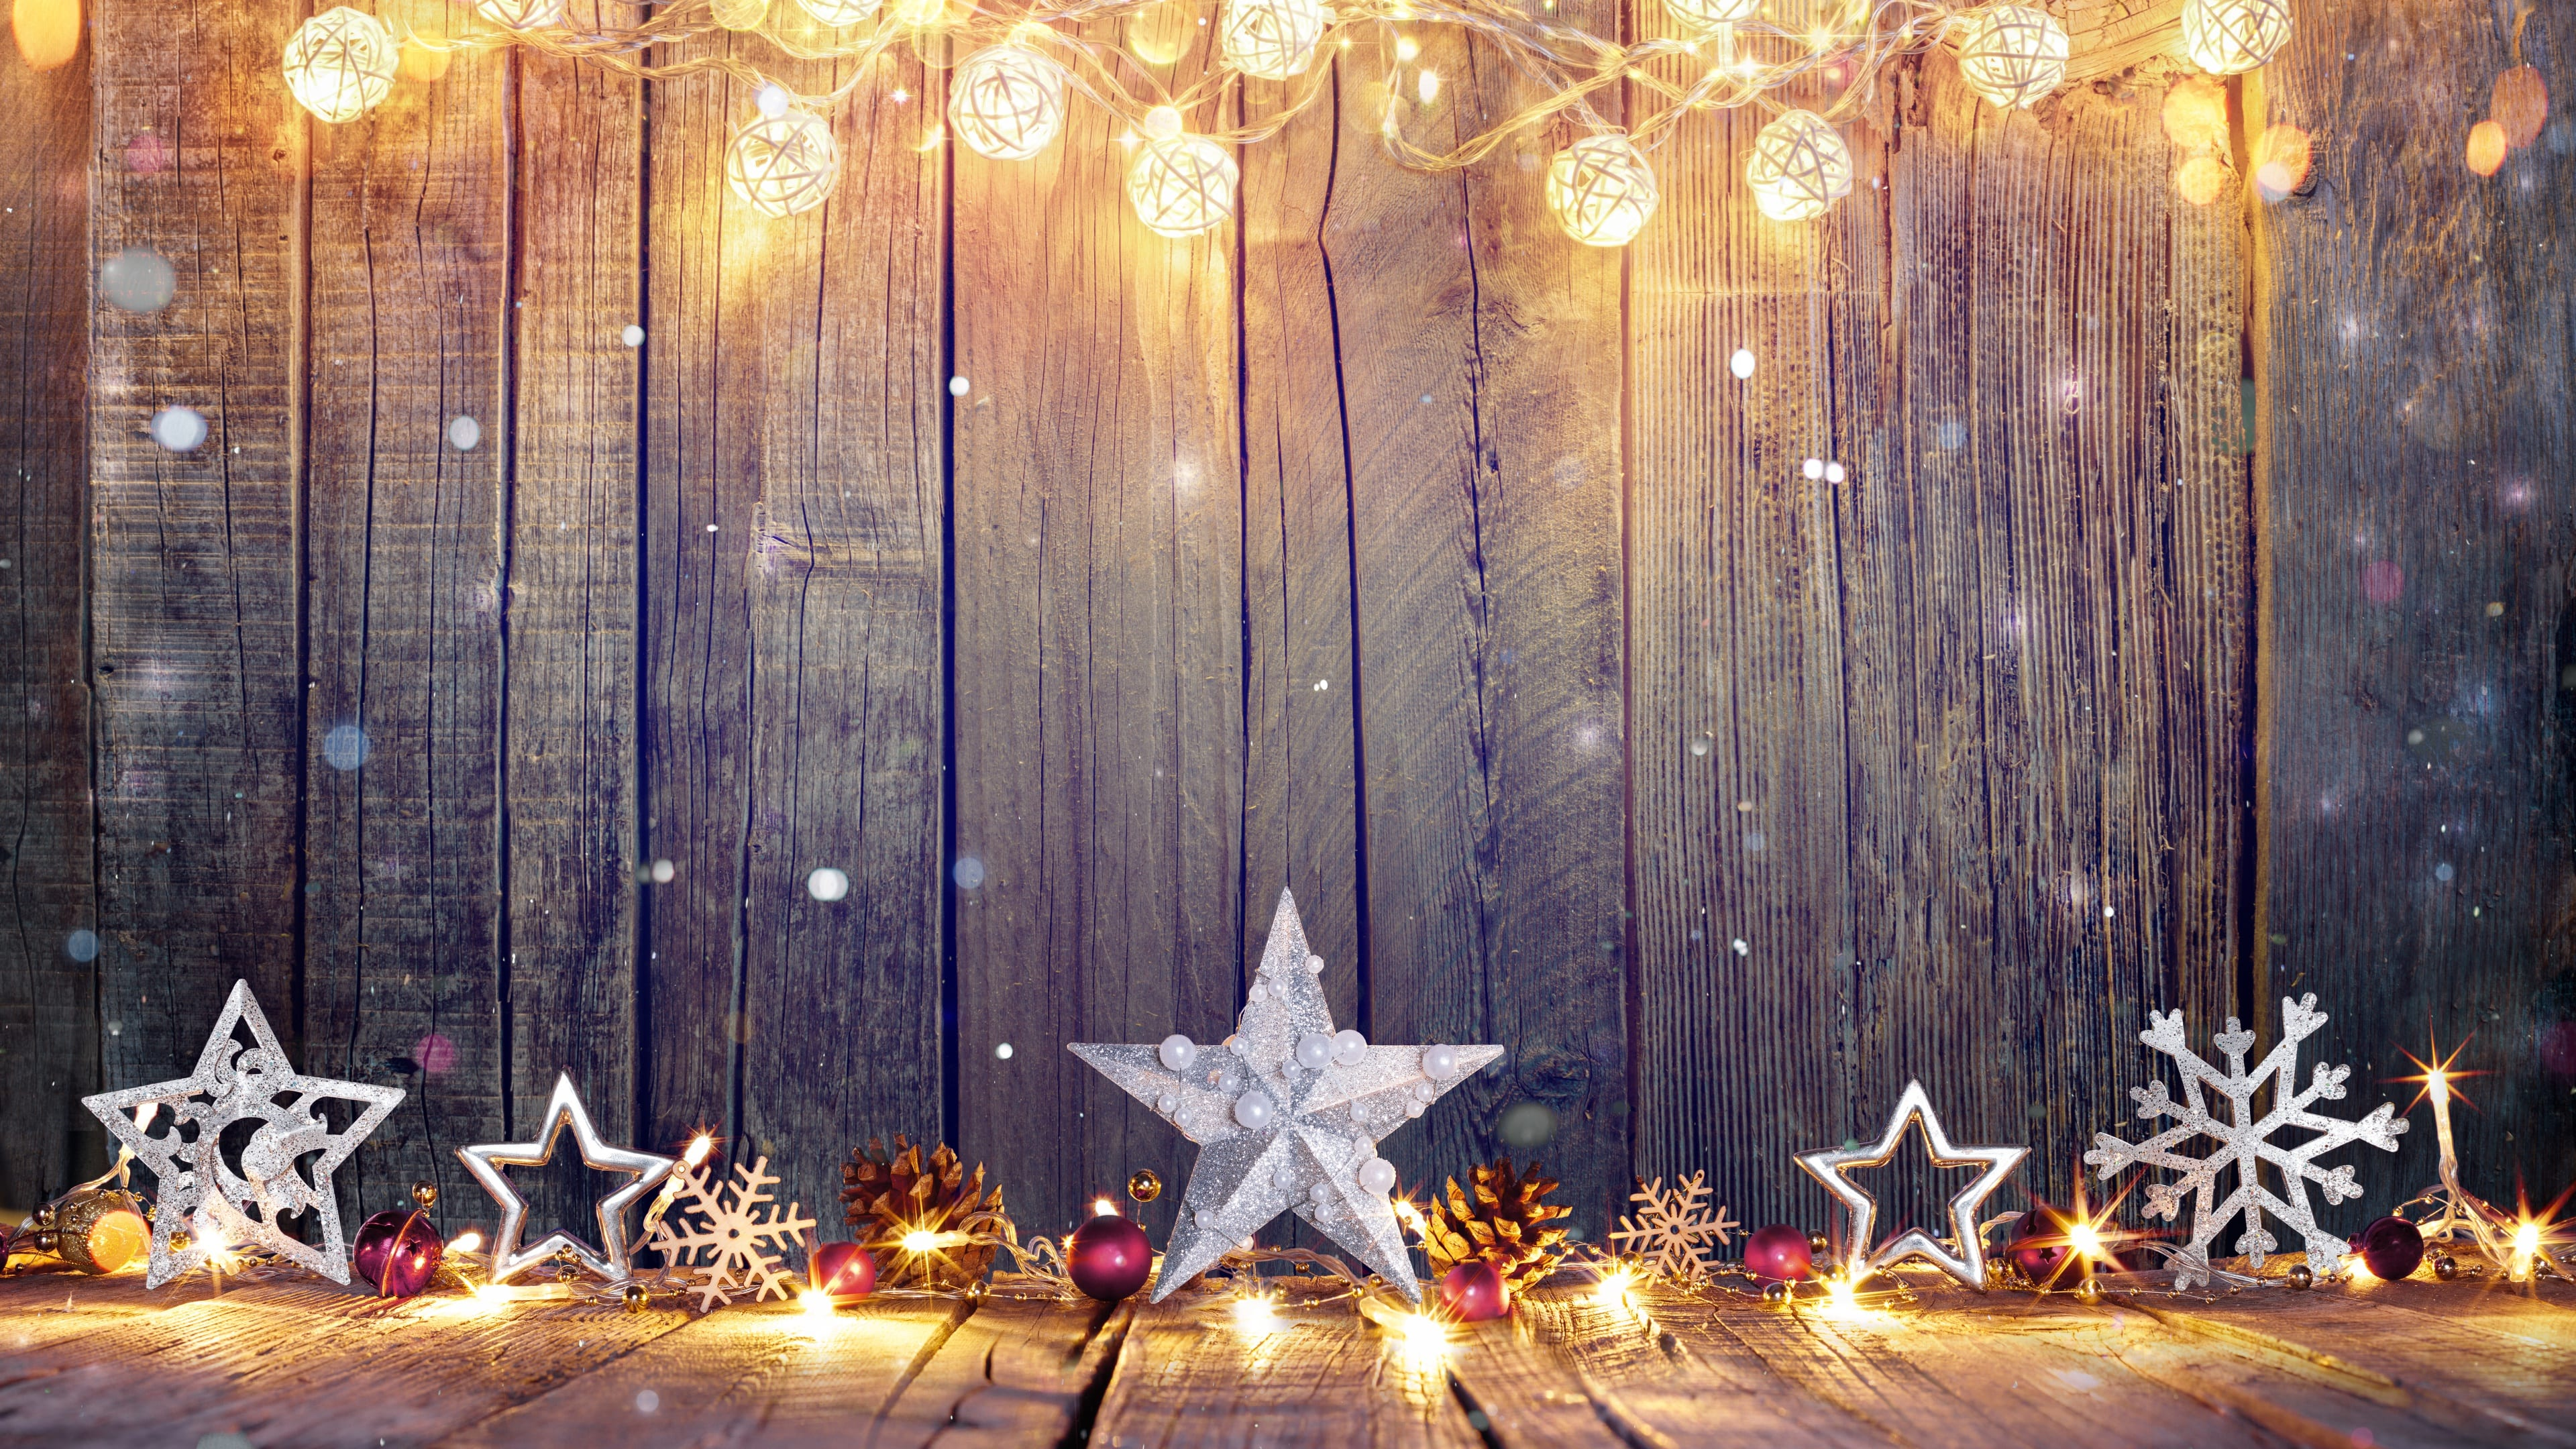 Christmas Silver Stars Decorations 3075 Wallpapers and Stock 3840x2160